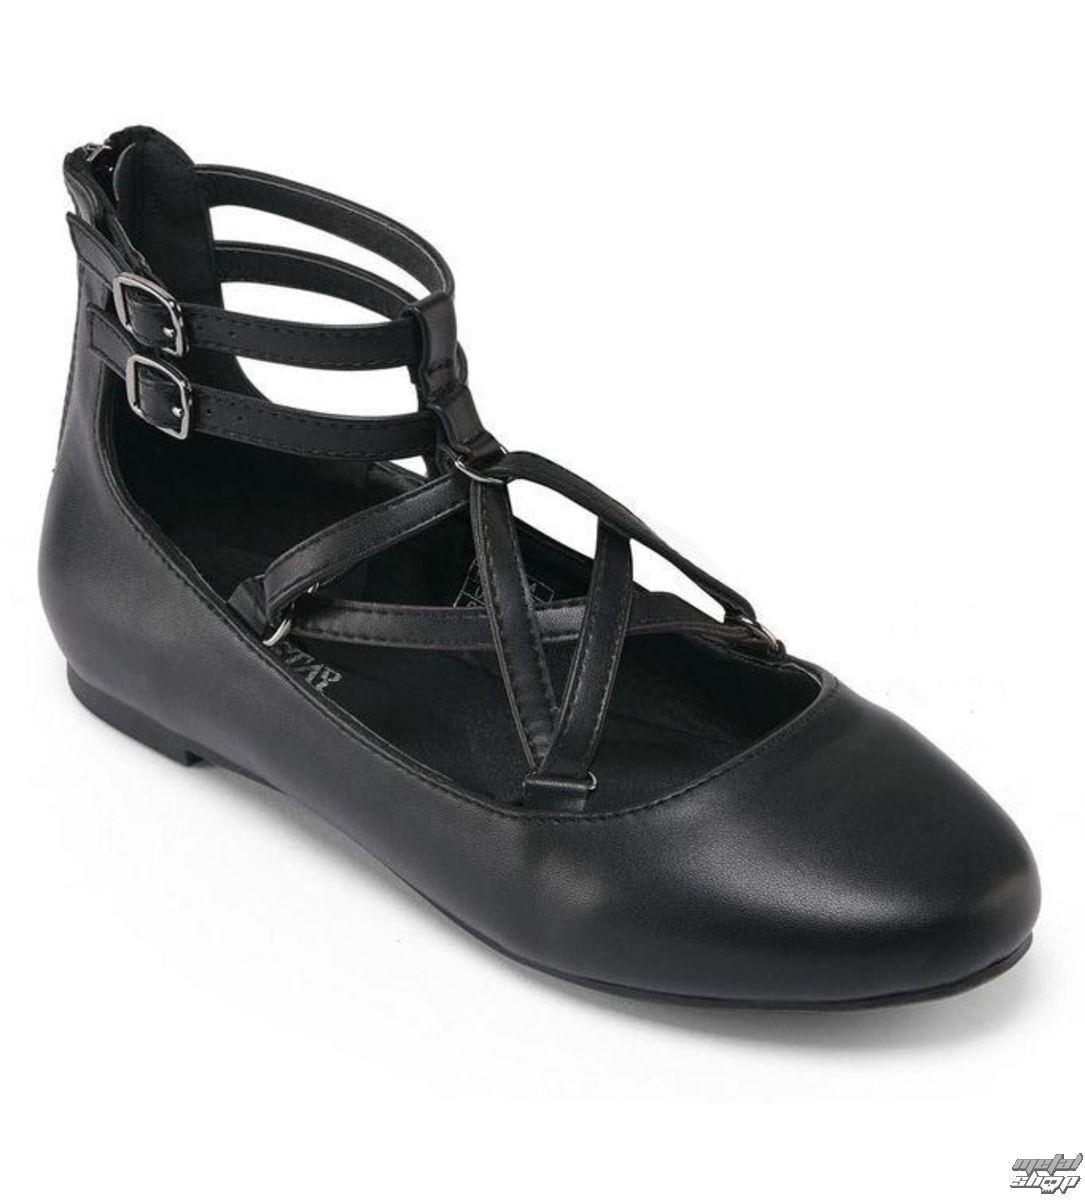 Damen Ballerinas - Wicca - KILLSTAR